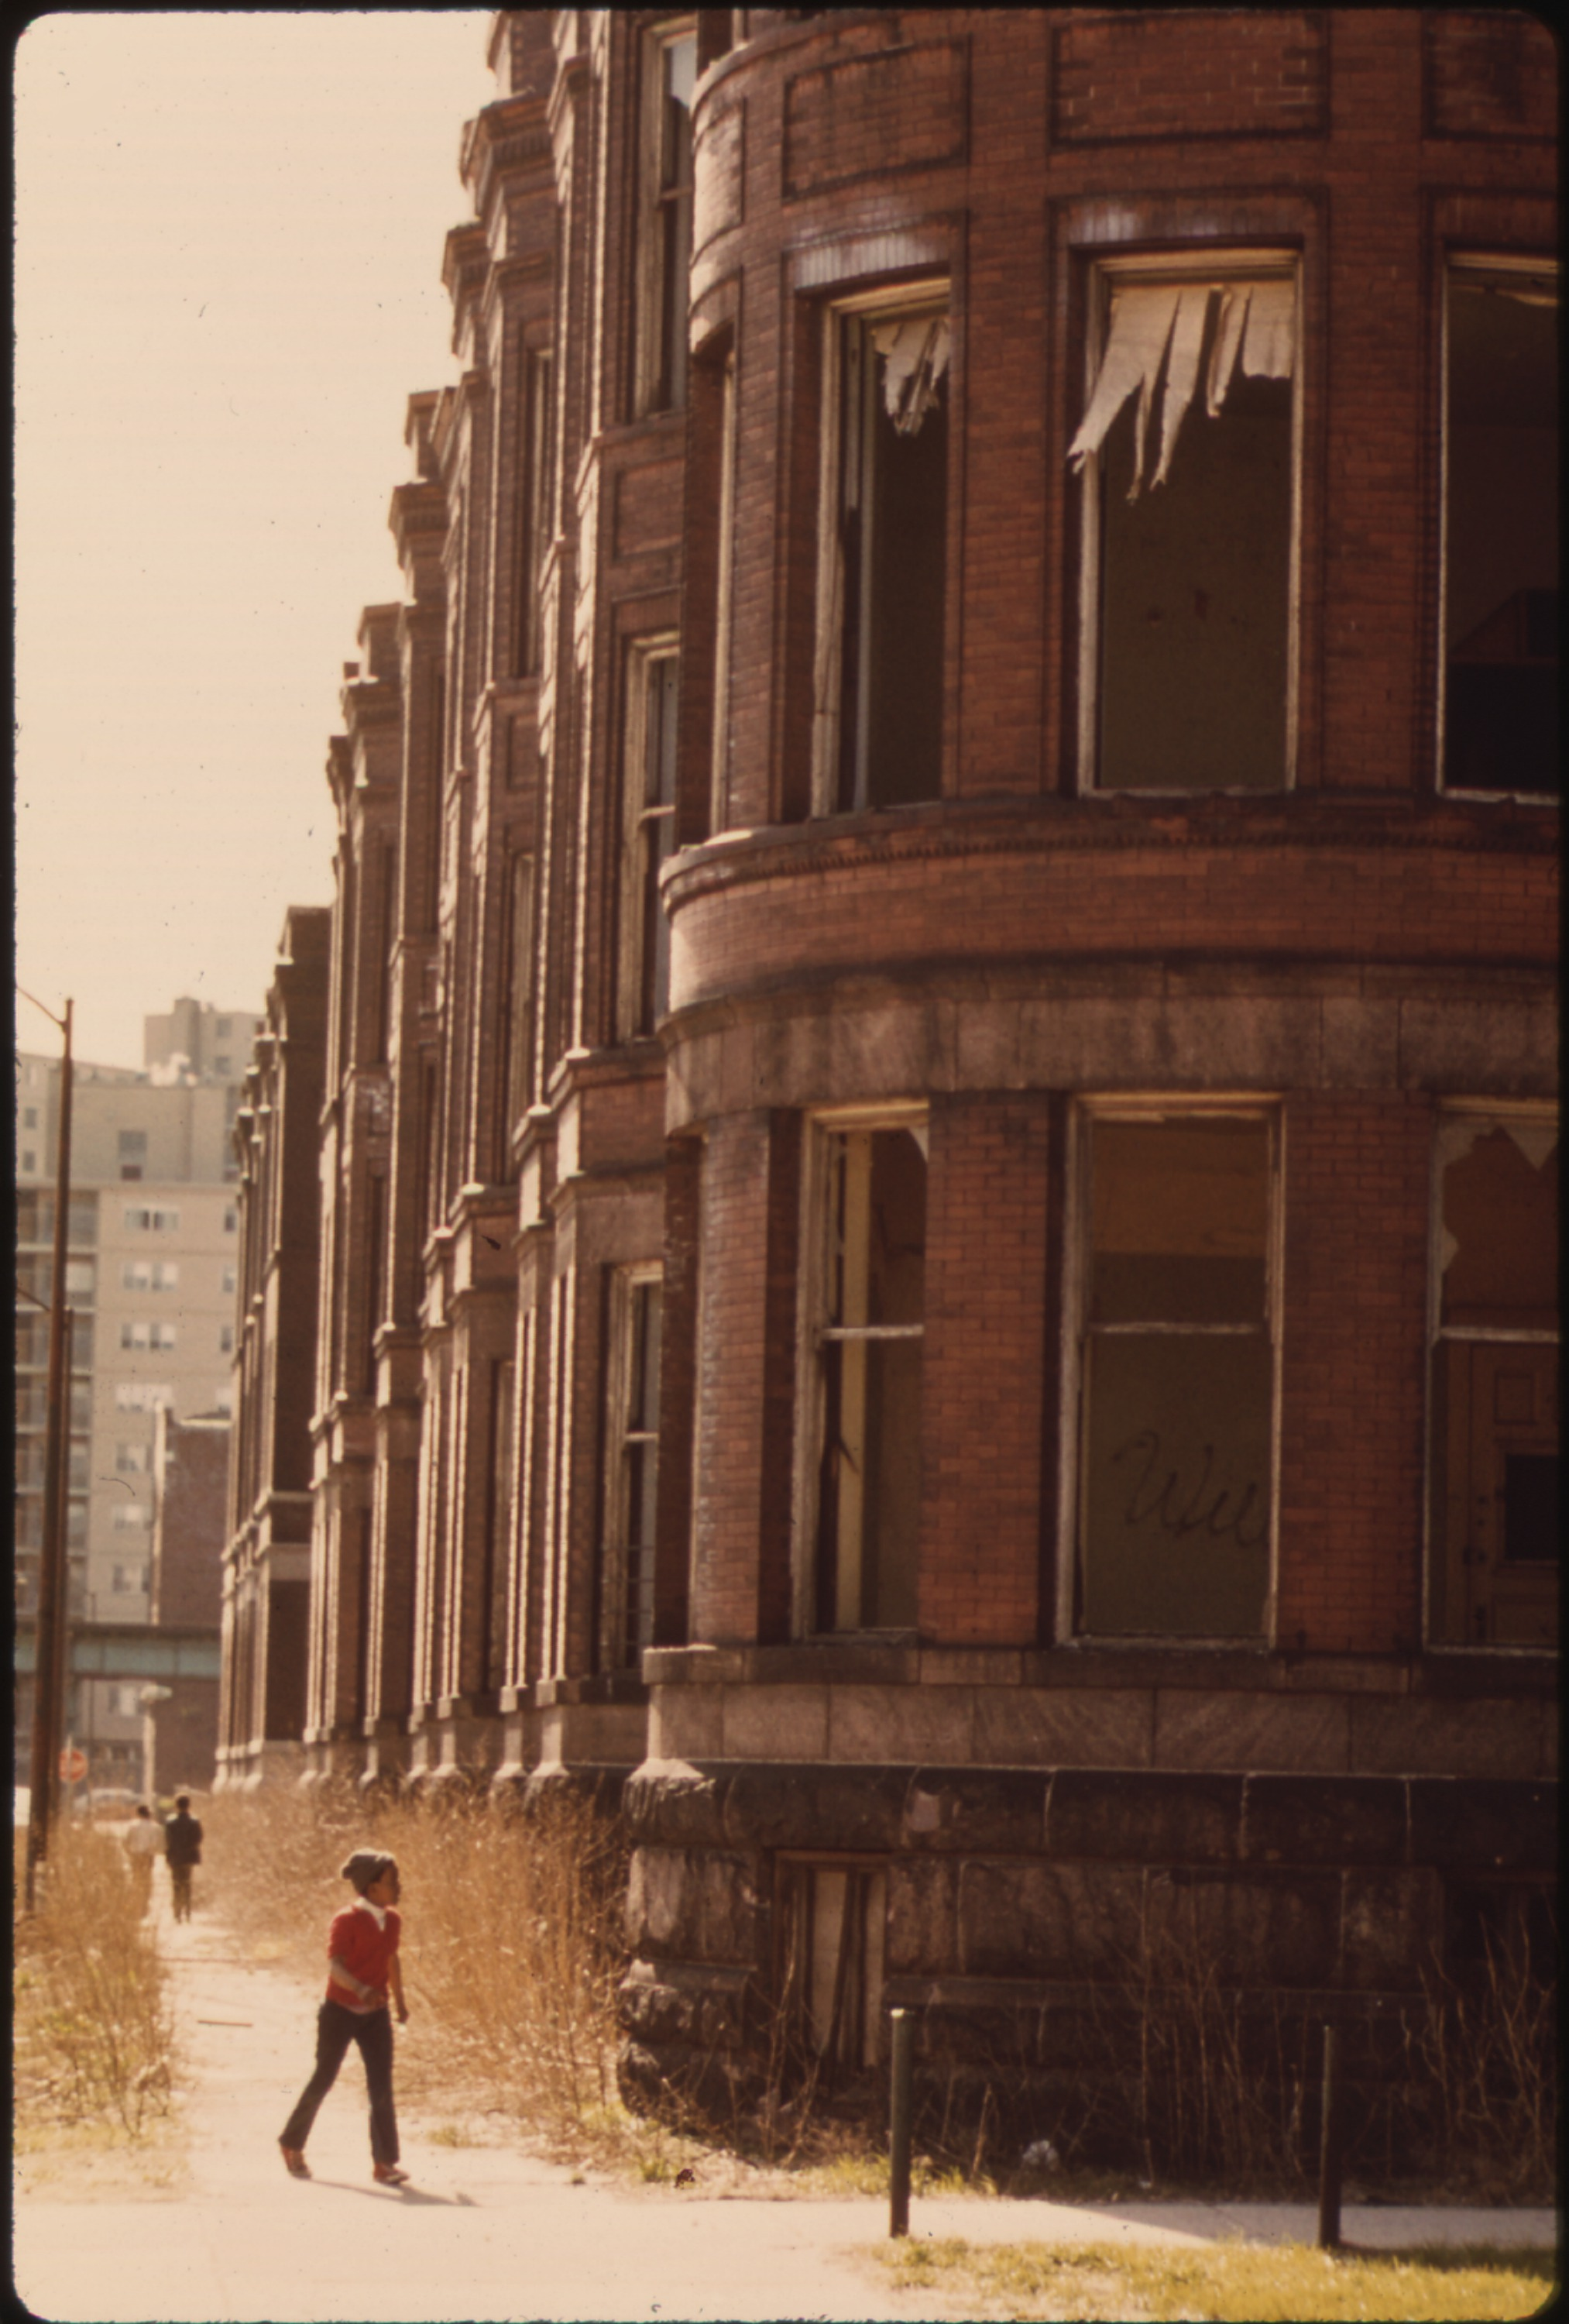 File:EMPTY HOUSING IN THE GHETTO ON CHICAGO'S SOUTH SIDE STRUCTURES ...